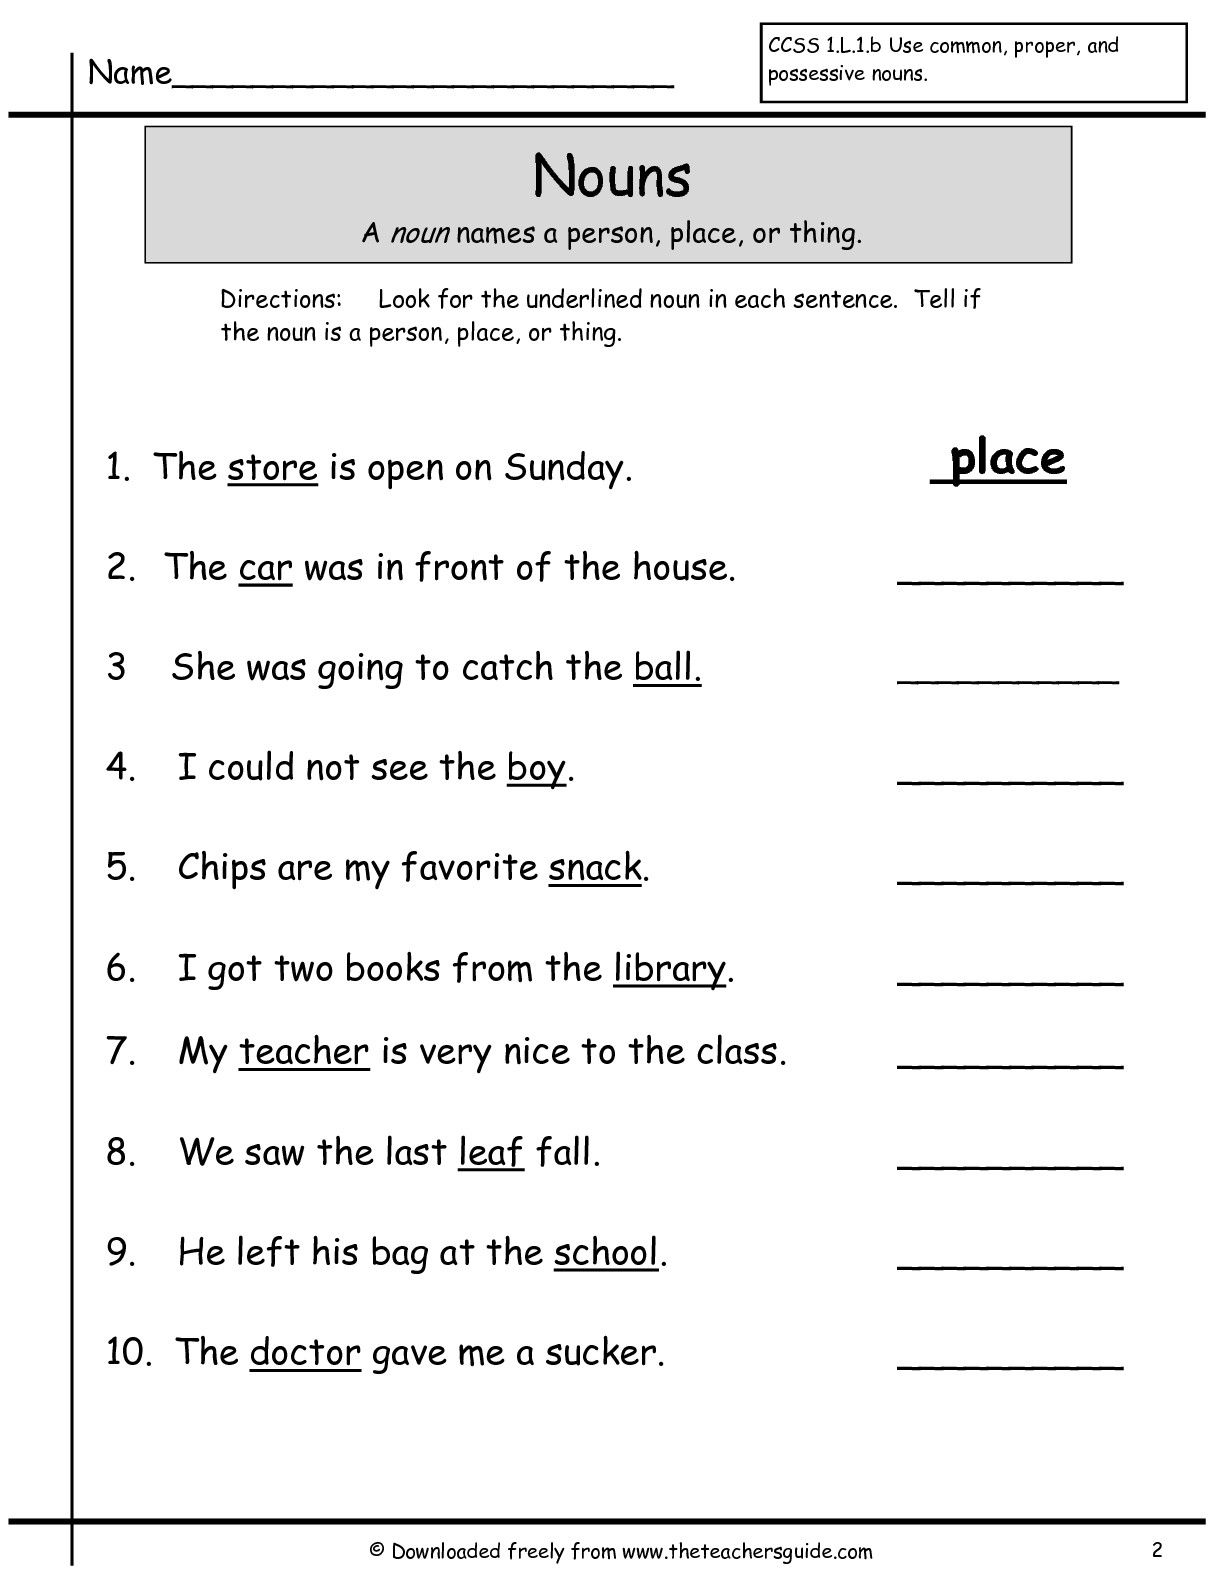 medium resolution of nouns grade 1 worksheets - Google Search   Nouns worksheet